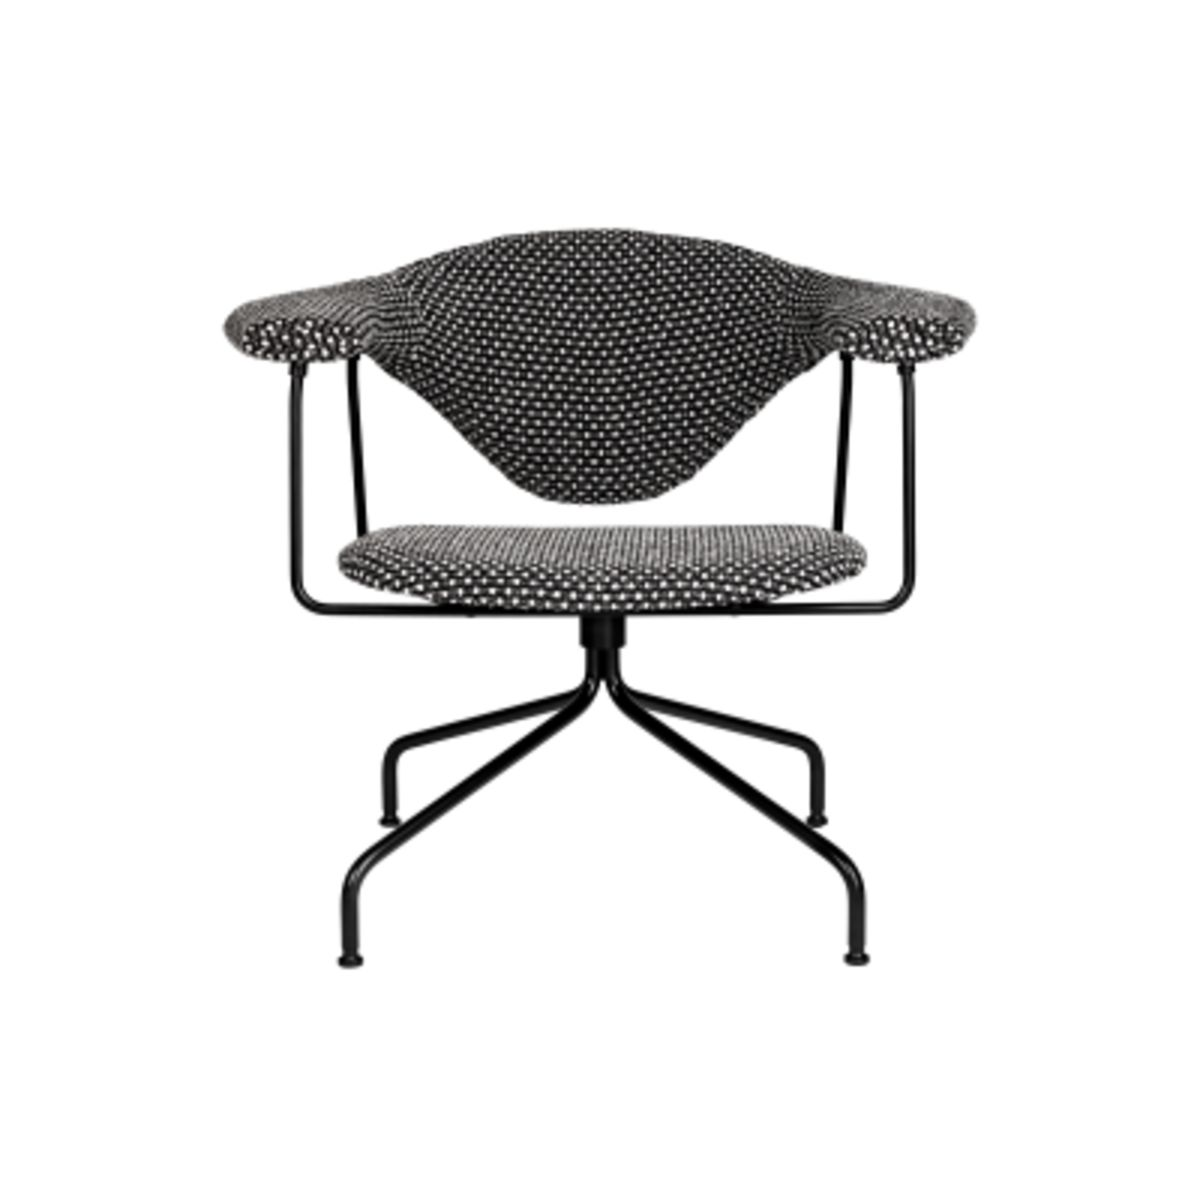 Masculo Lounge Chair Swivel Base Price Grp 01 By Gubi